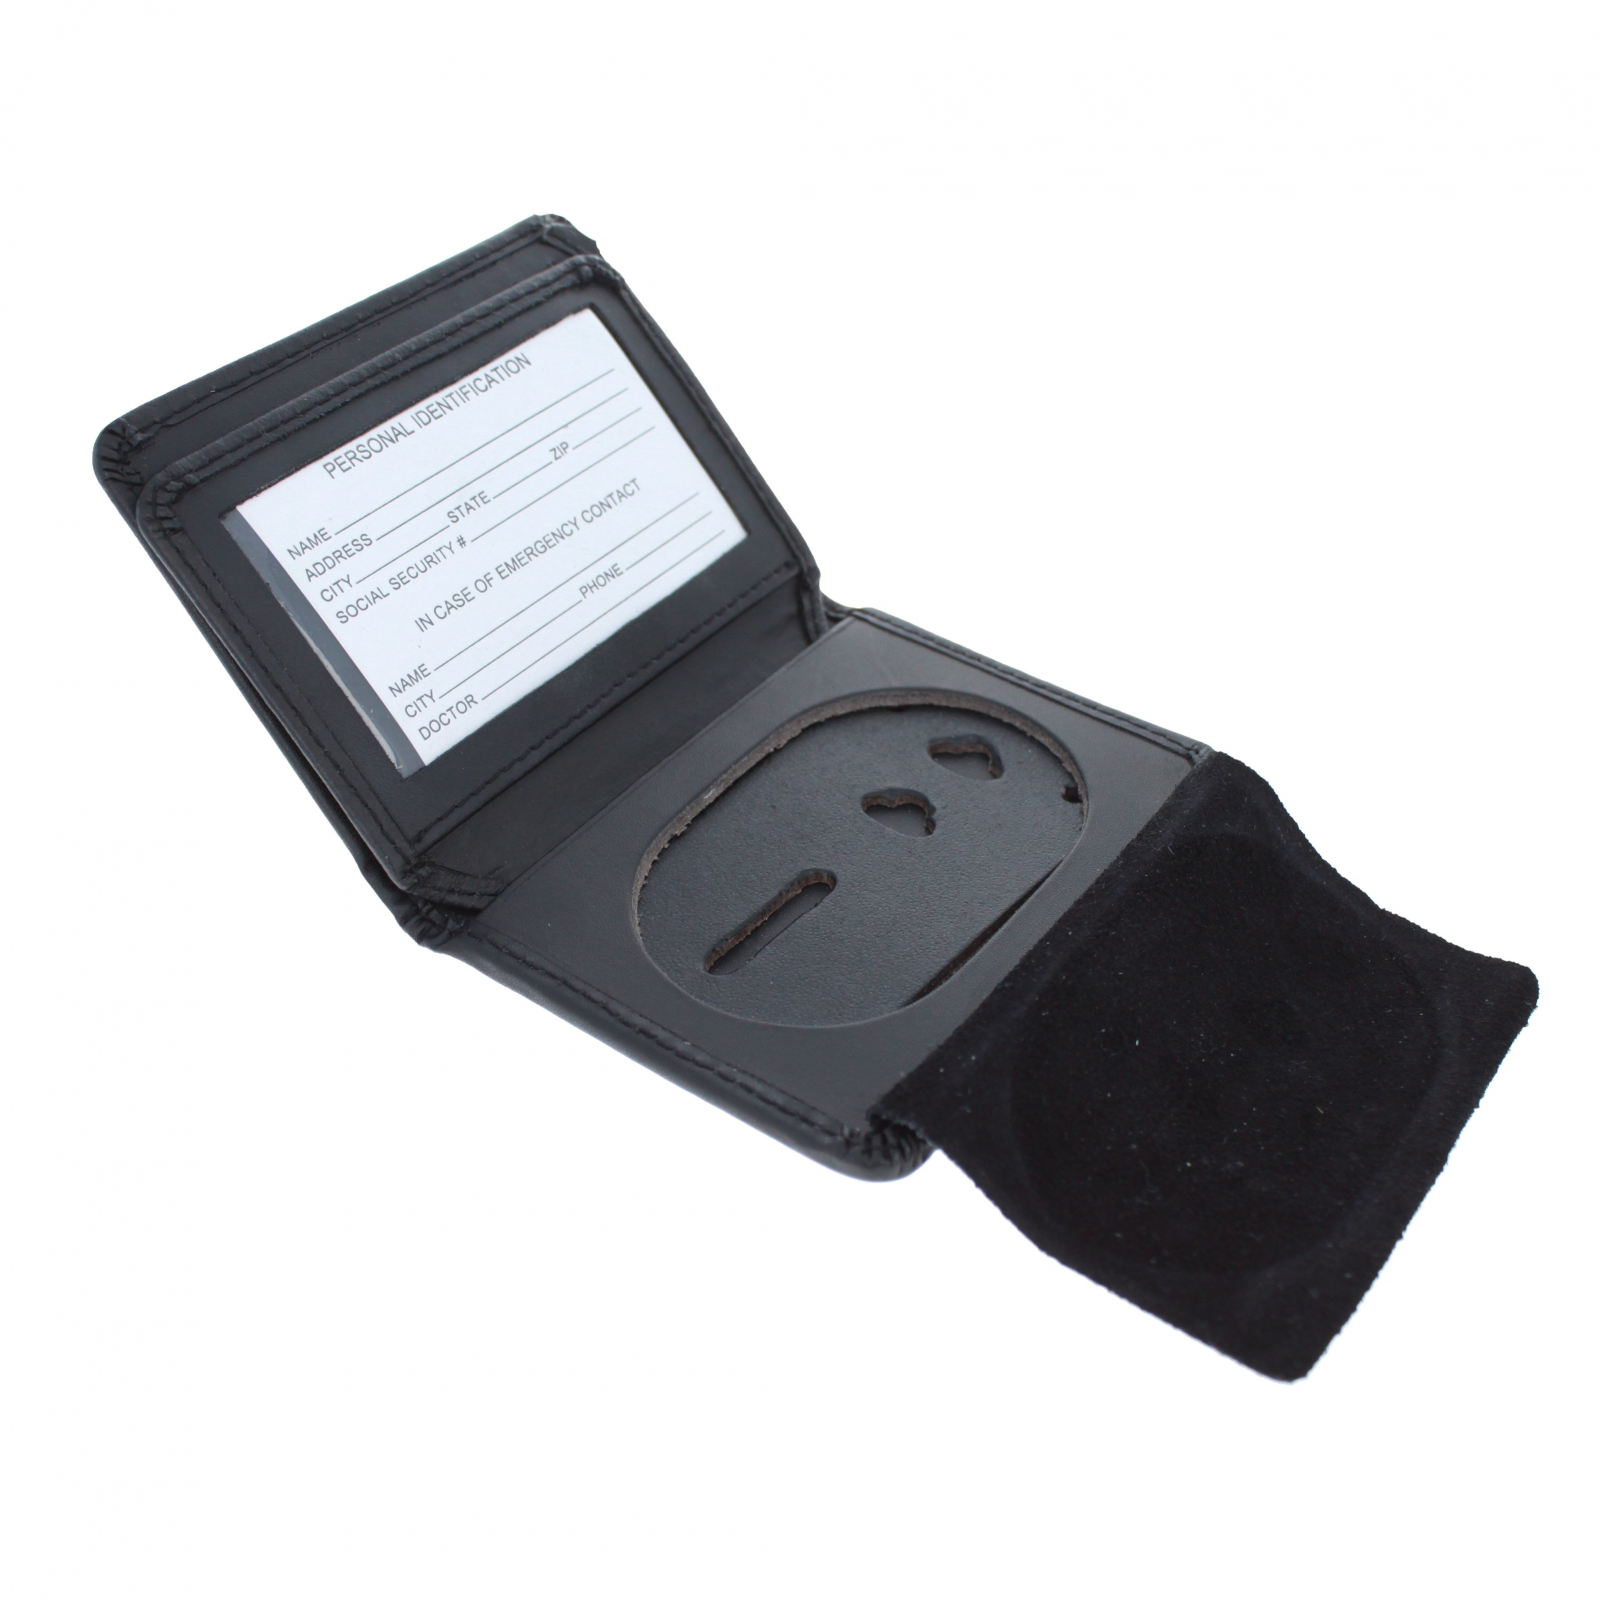 ASR Federal Law Enforcement RFID Leather Hidden Badge Wallet and ID Holder - Oval